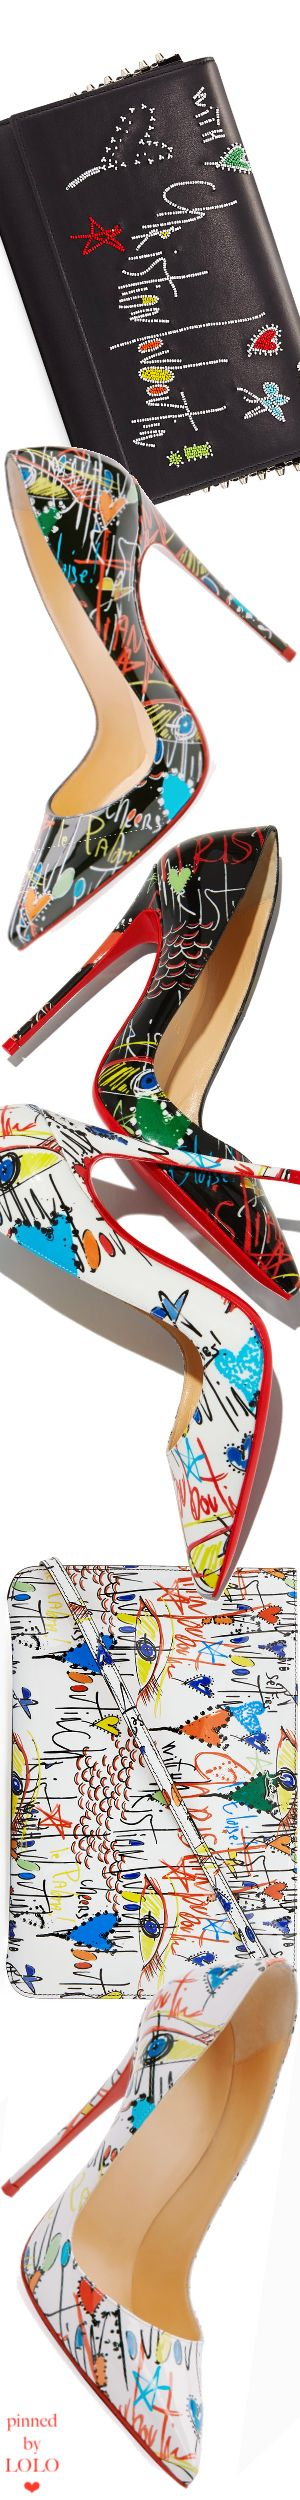 Christian Louboutin So Kate Loubitag Red Sole Pump and Handbags